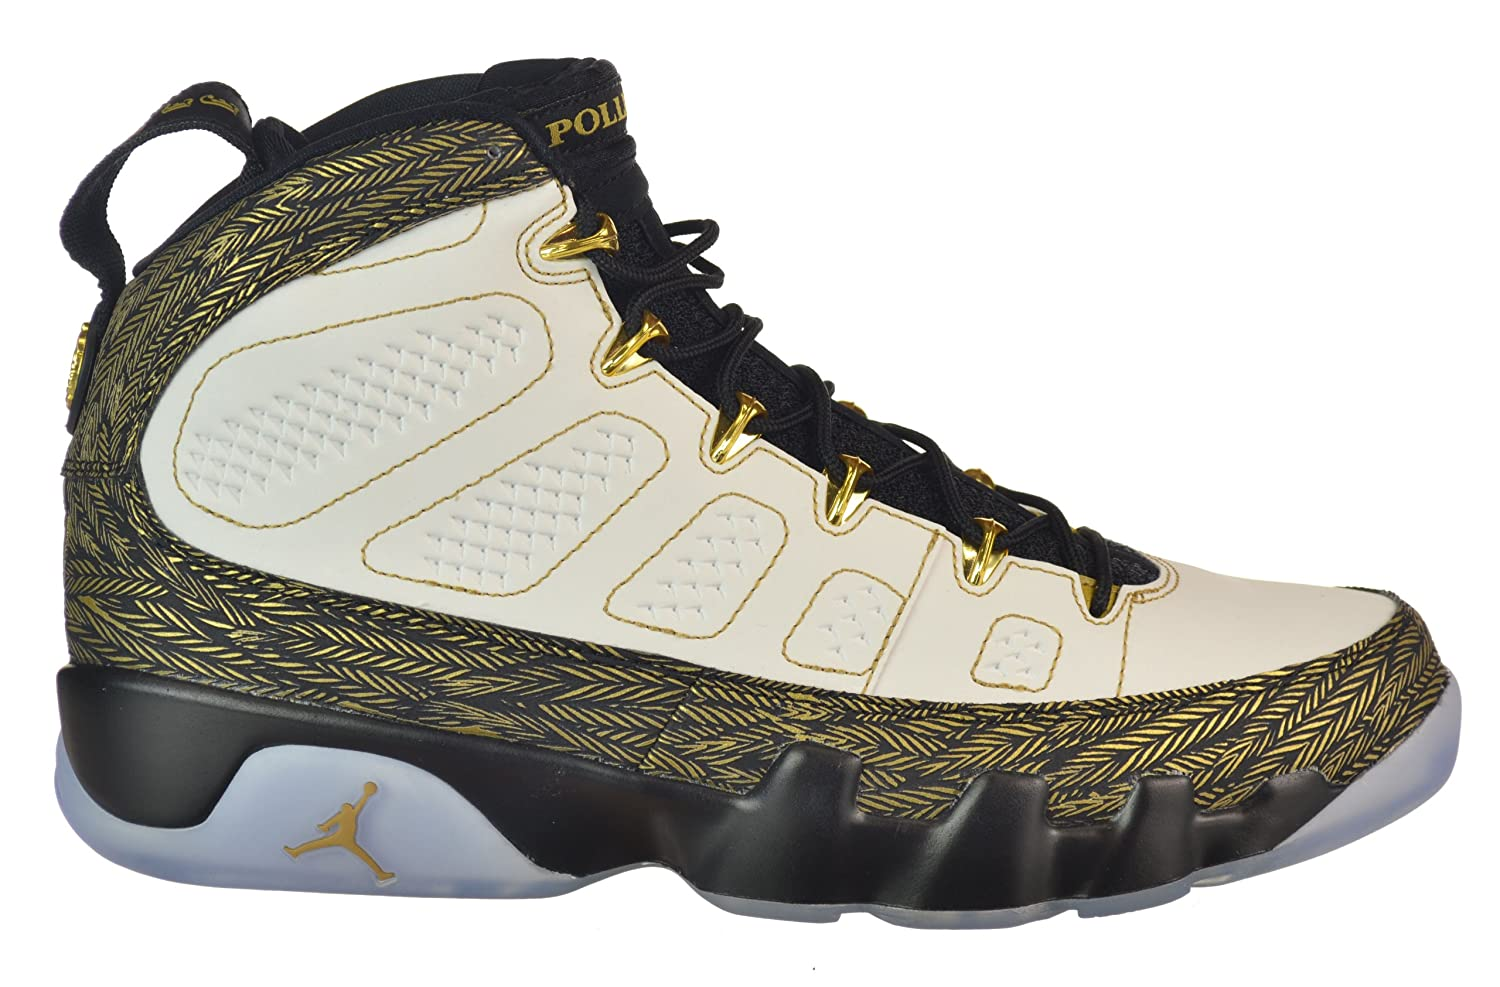 69223ae3ee7 Amazon.com | Jordan Air 9 Retro DB Doernbecher White/Gold/Black | Fashion  Sneakers